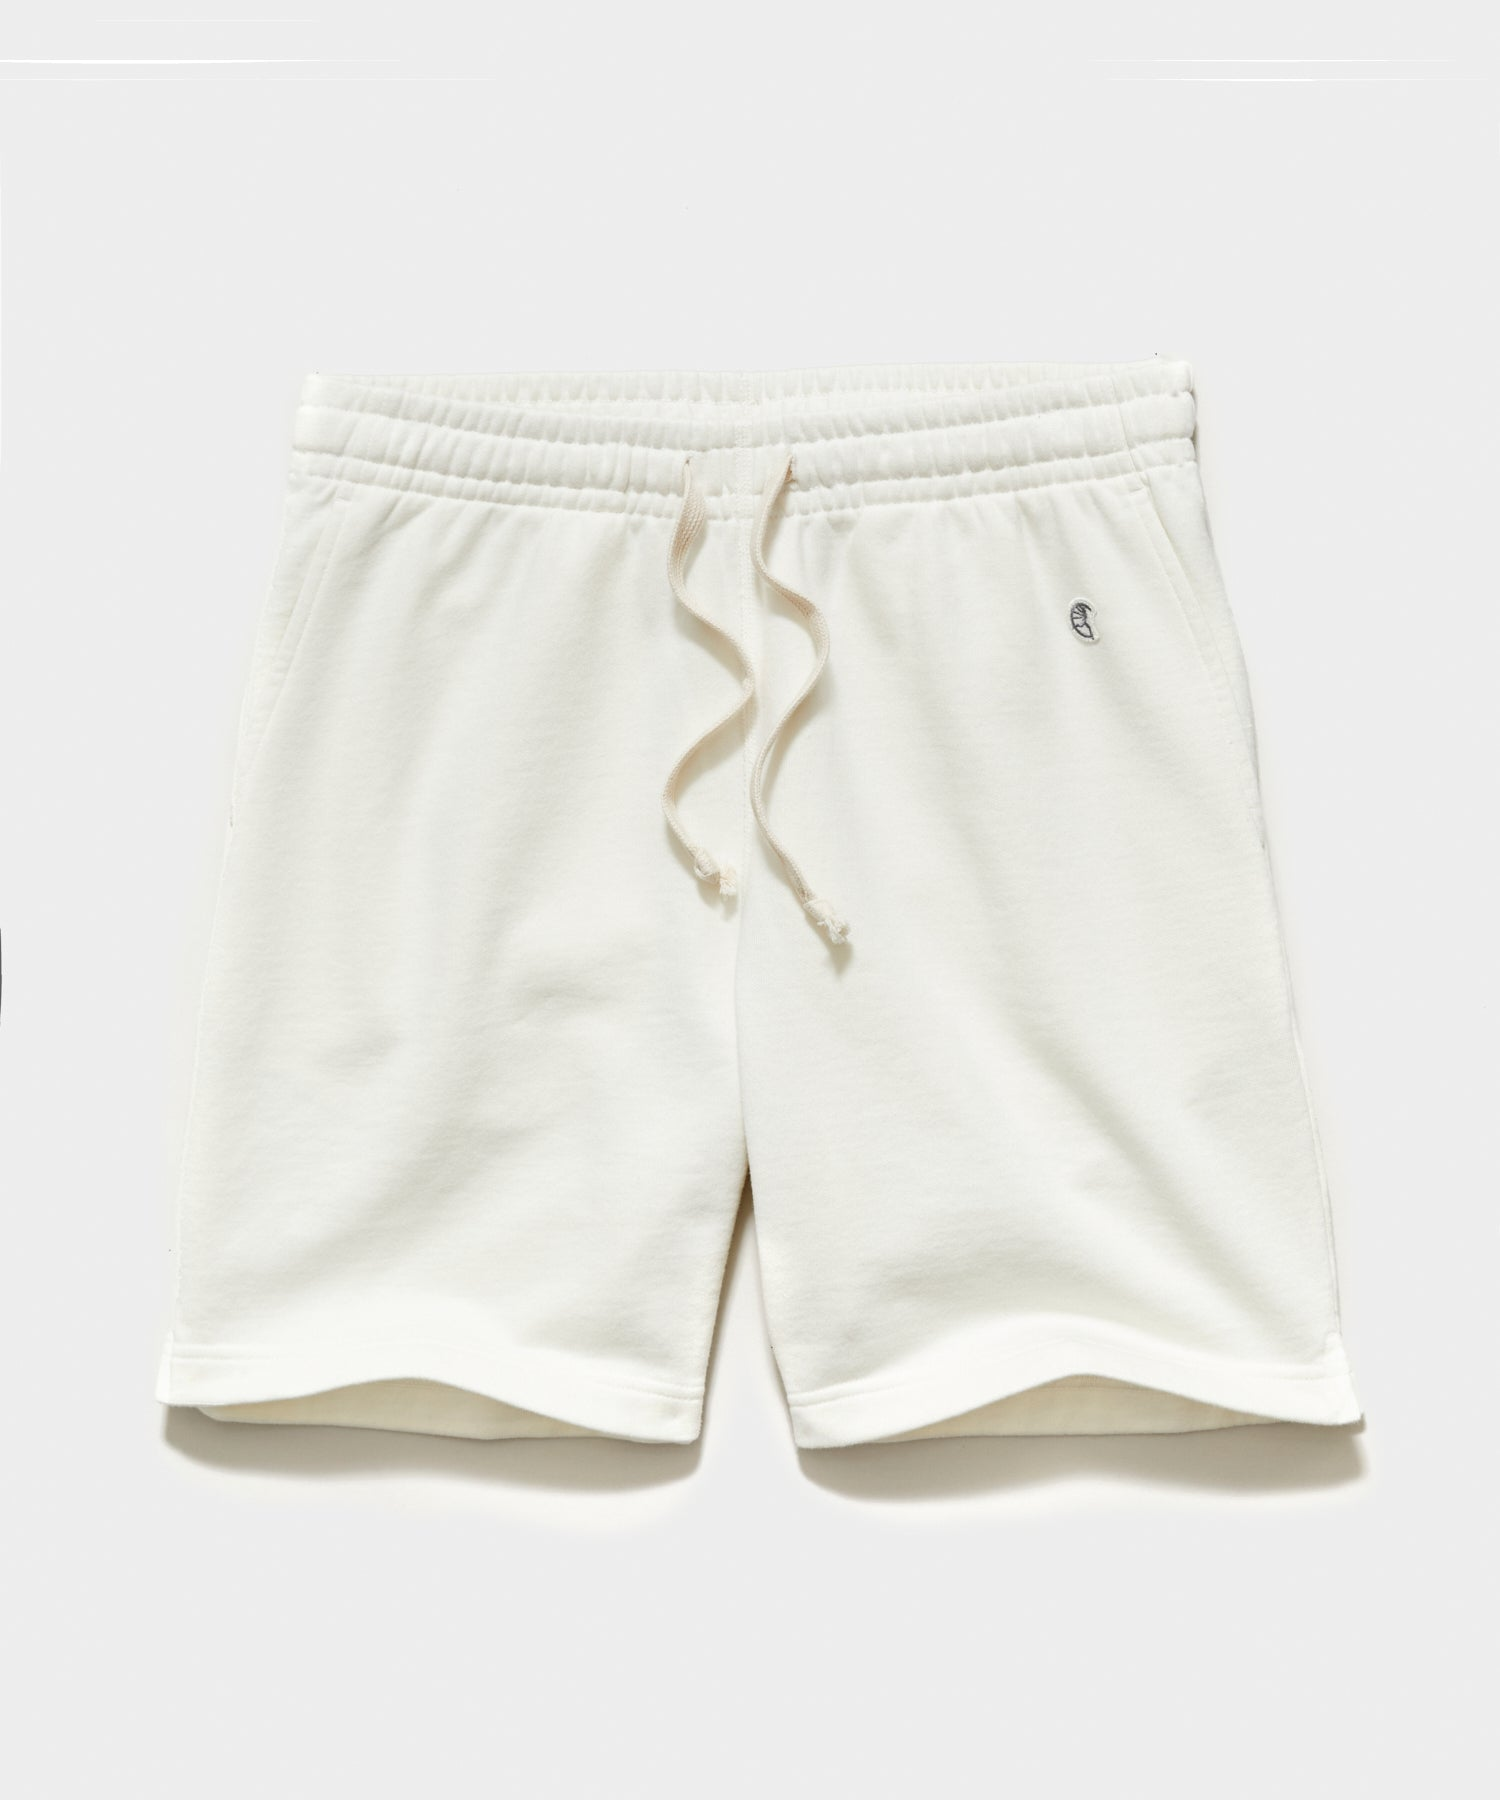 "7"" Midweight Warm Up Short in Antique White"